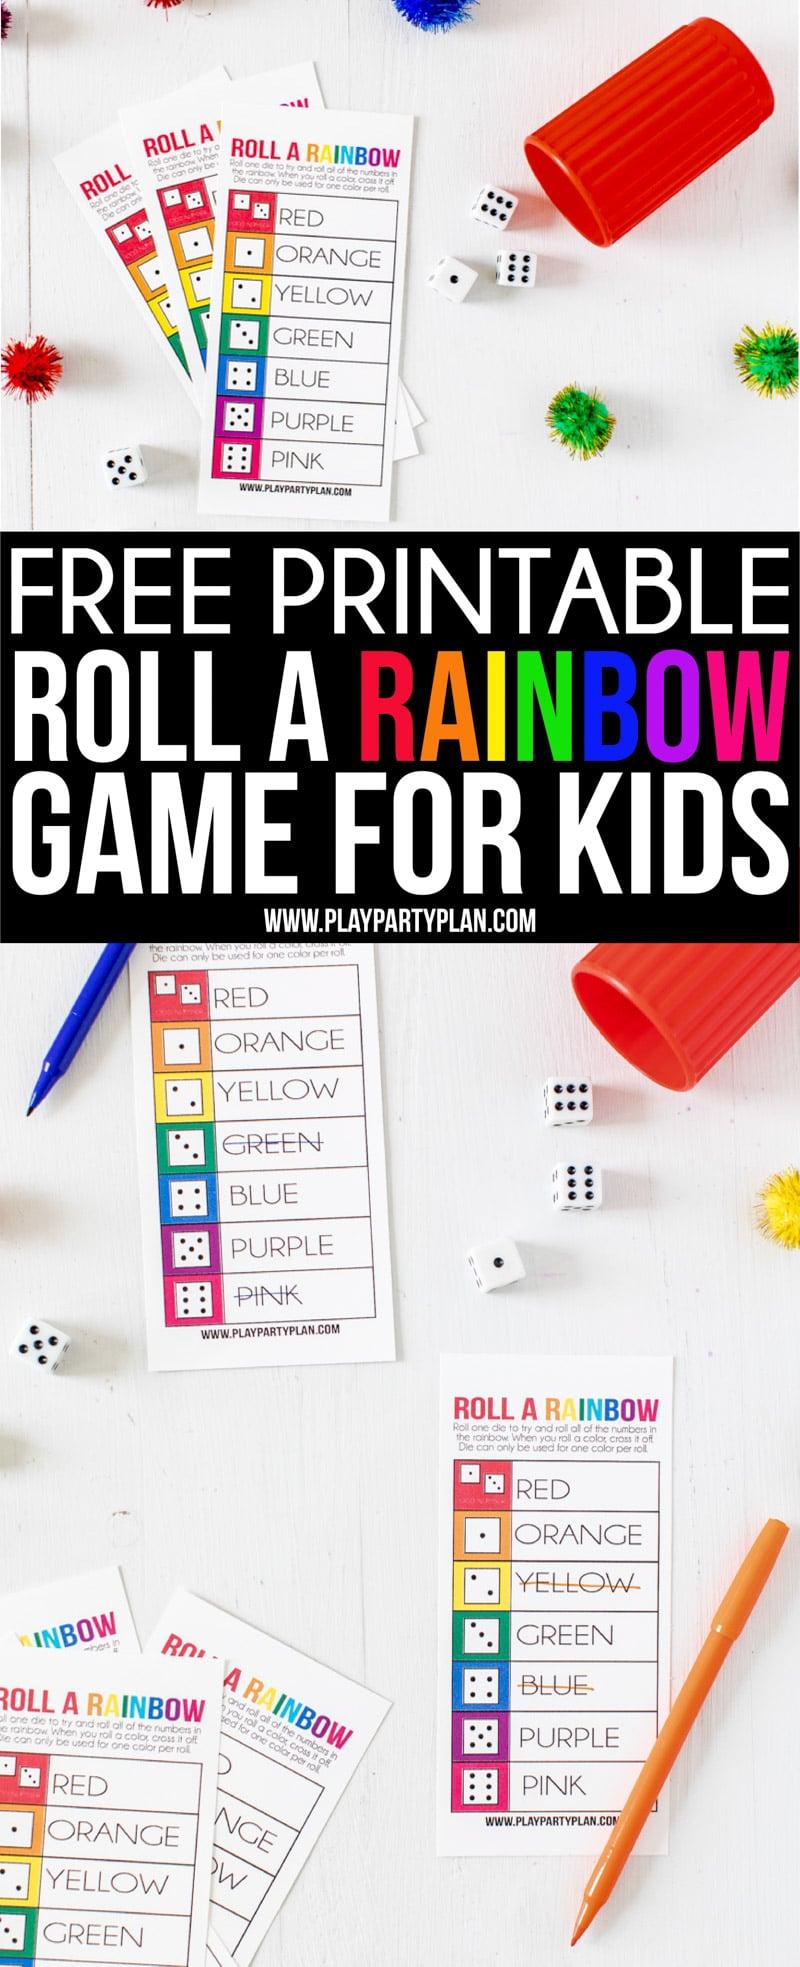 This roll a rainbow game is one of the best St. Patrick's Day games for kids! Perfect if you're looking for rainbow activities for the classroom, for a party, or just for a fun colorful afternoon!